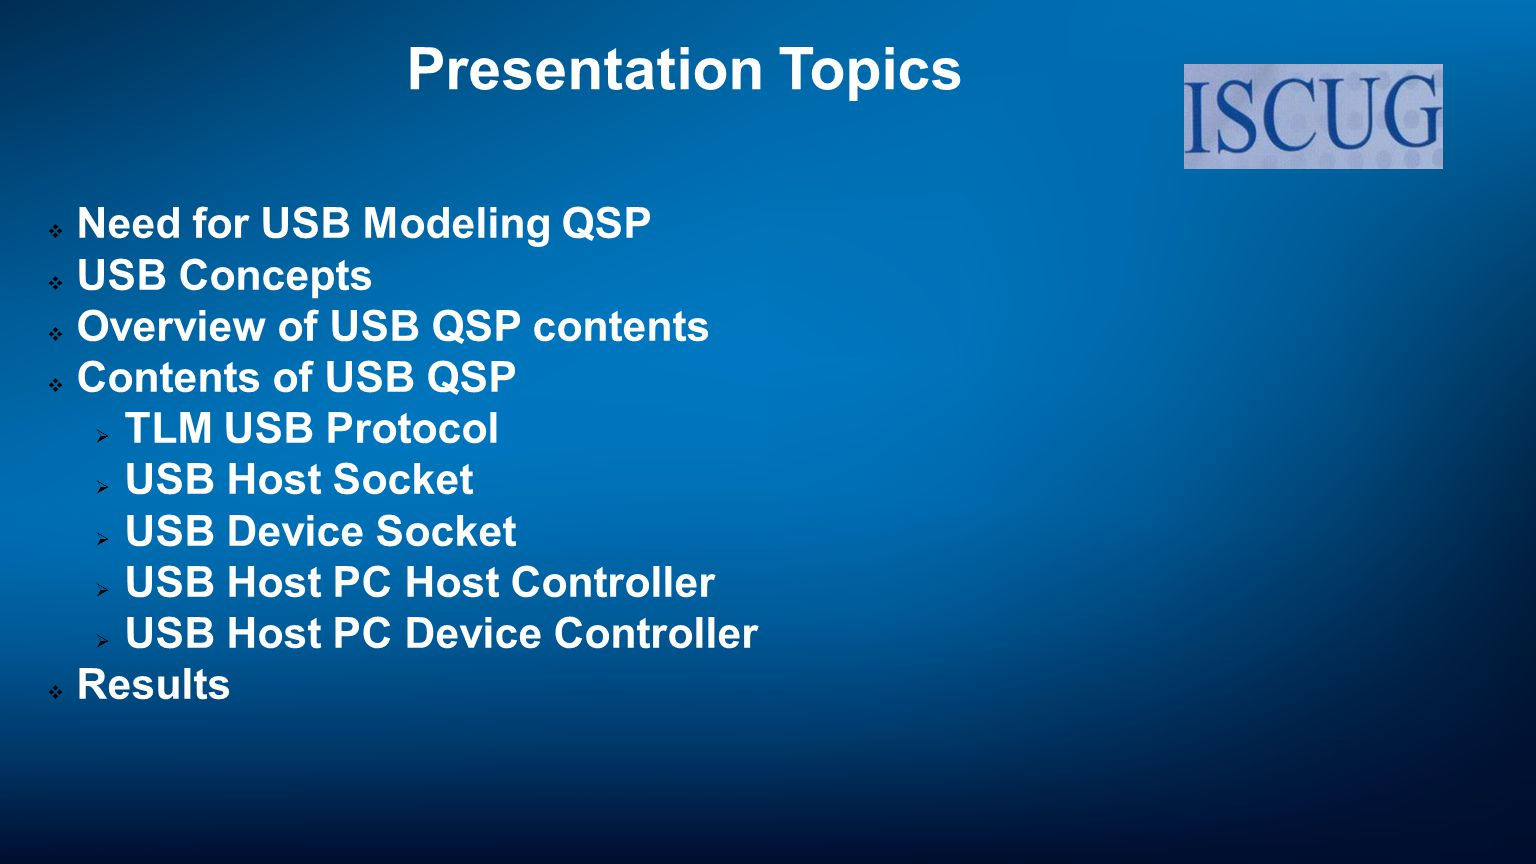 Need for USB Modeling QSP Issues with USB Modeling USB protocol is standardized but no available standard on TLM USB Developing a model which addresses USB protocol without re-usable components is time consuming Testing USB models requires complete protocol stack Solution Provide basic infrastructure to quick start SystemC model development of USB Device controller, USB Host Controller Facilitates development and testing of device driver/application stack Generic USB Device/Host requirements are modeled in convenience sockets so model developer needs to focus only on device-related modeling